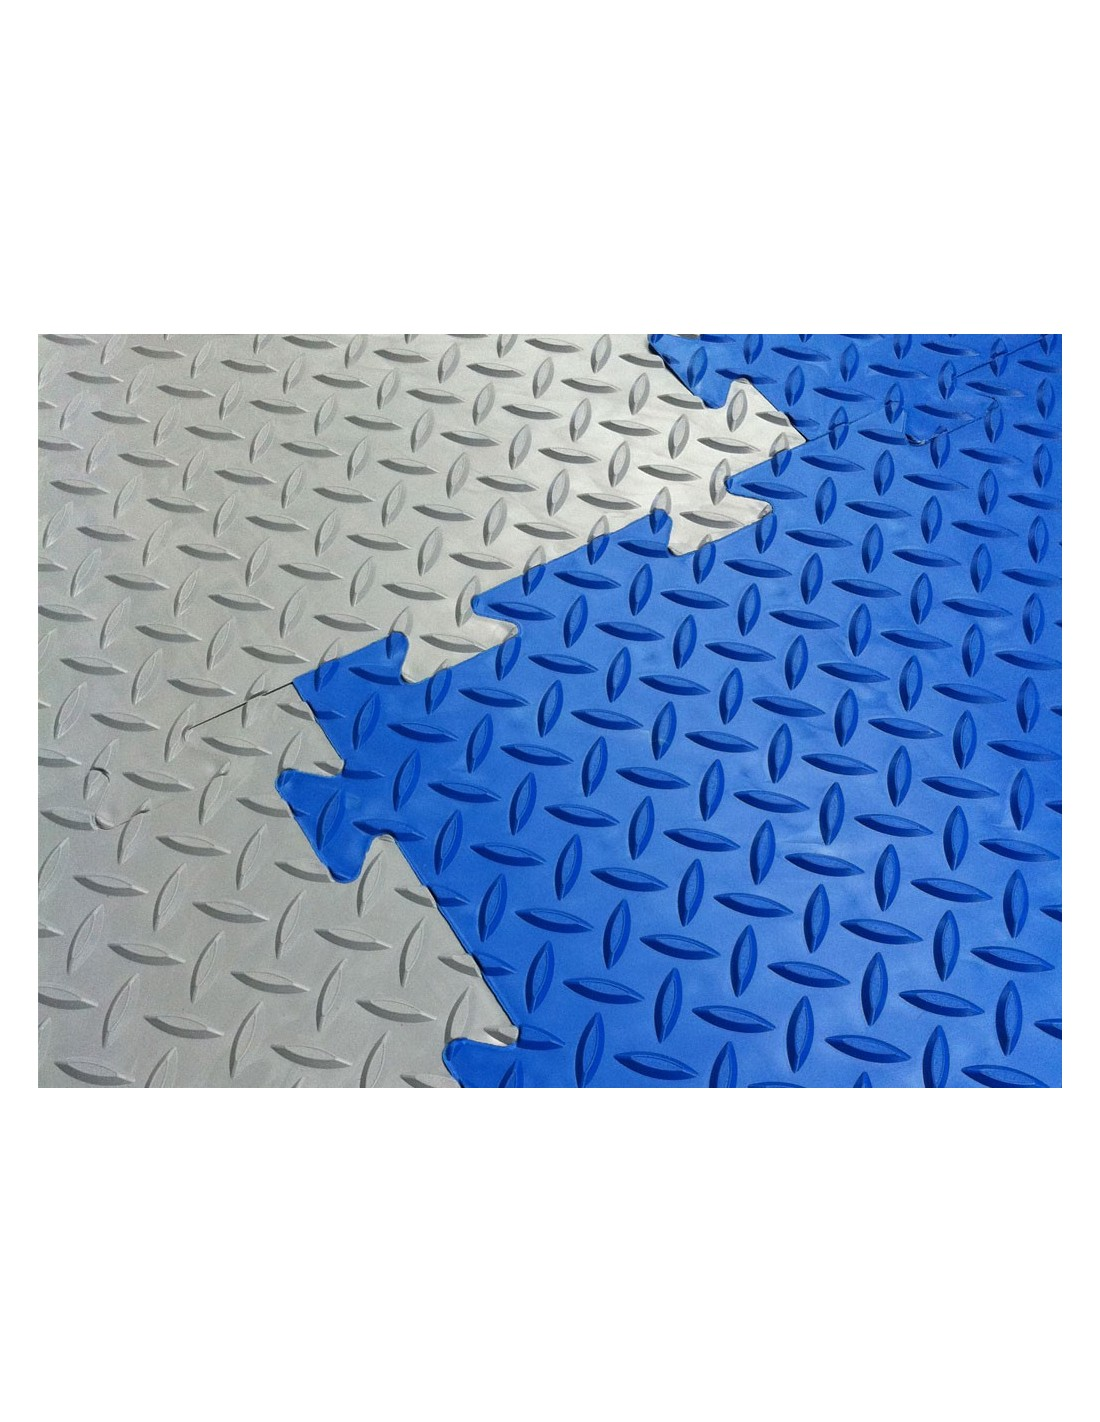 Checkerlok Interlocking Pvc Floor Tile Puzzle Mats